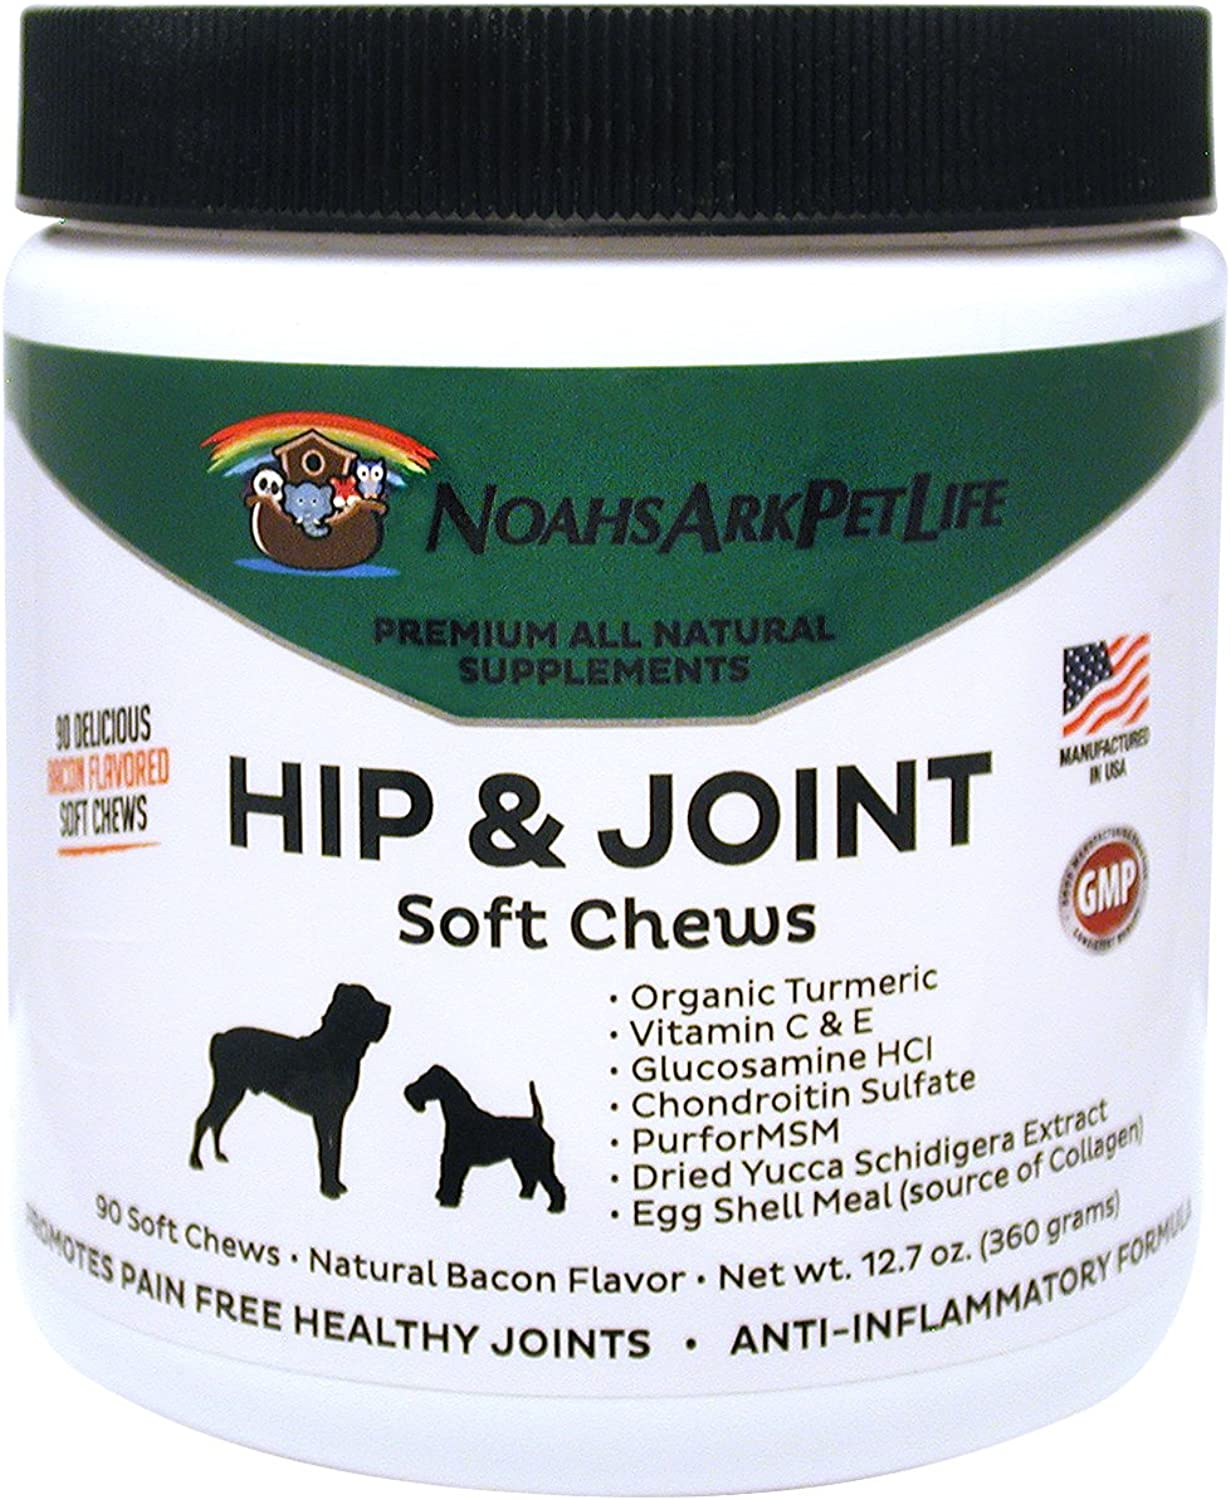 Noah's Ark Pet Life Advanced Hip and Joint Supplement for Dogs, Soft Chews, Arthritis Pain Relief, Anti Inflammatory, Glucosamine Chondroitin MSM, All Natural Organic Turmeric, Bacon Flavor, 90 Ct